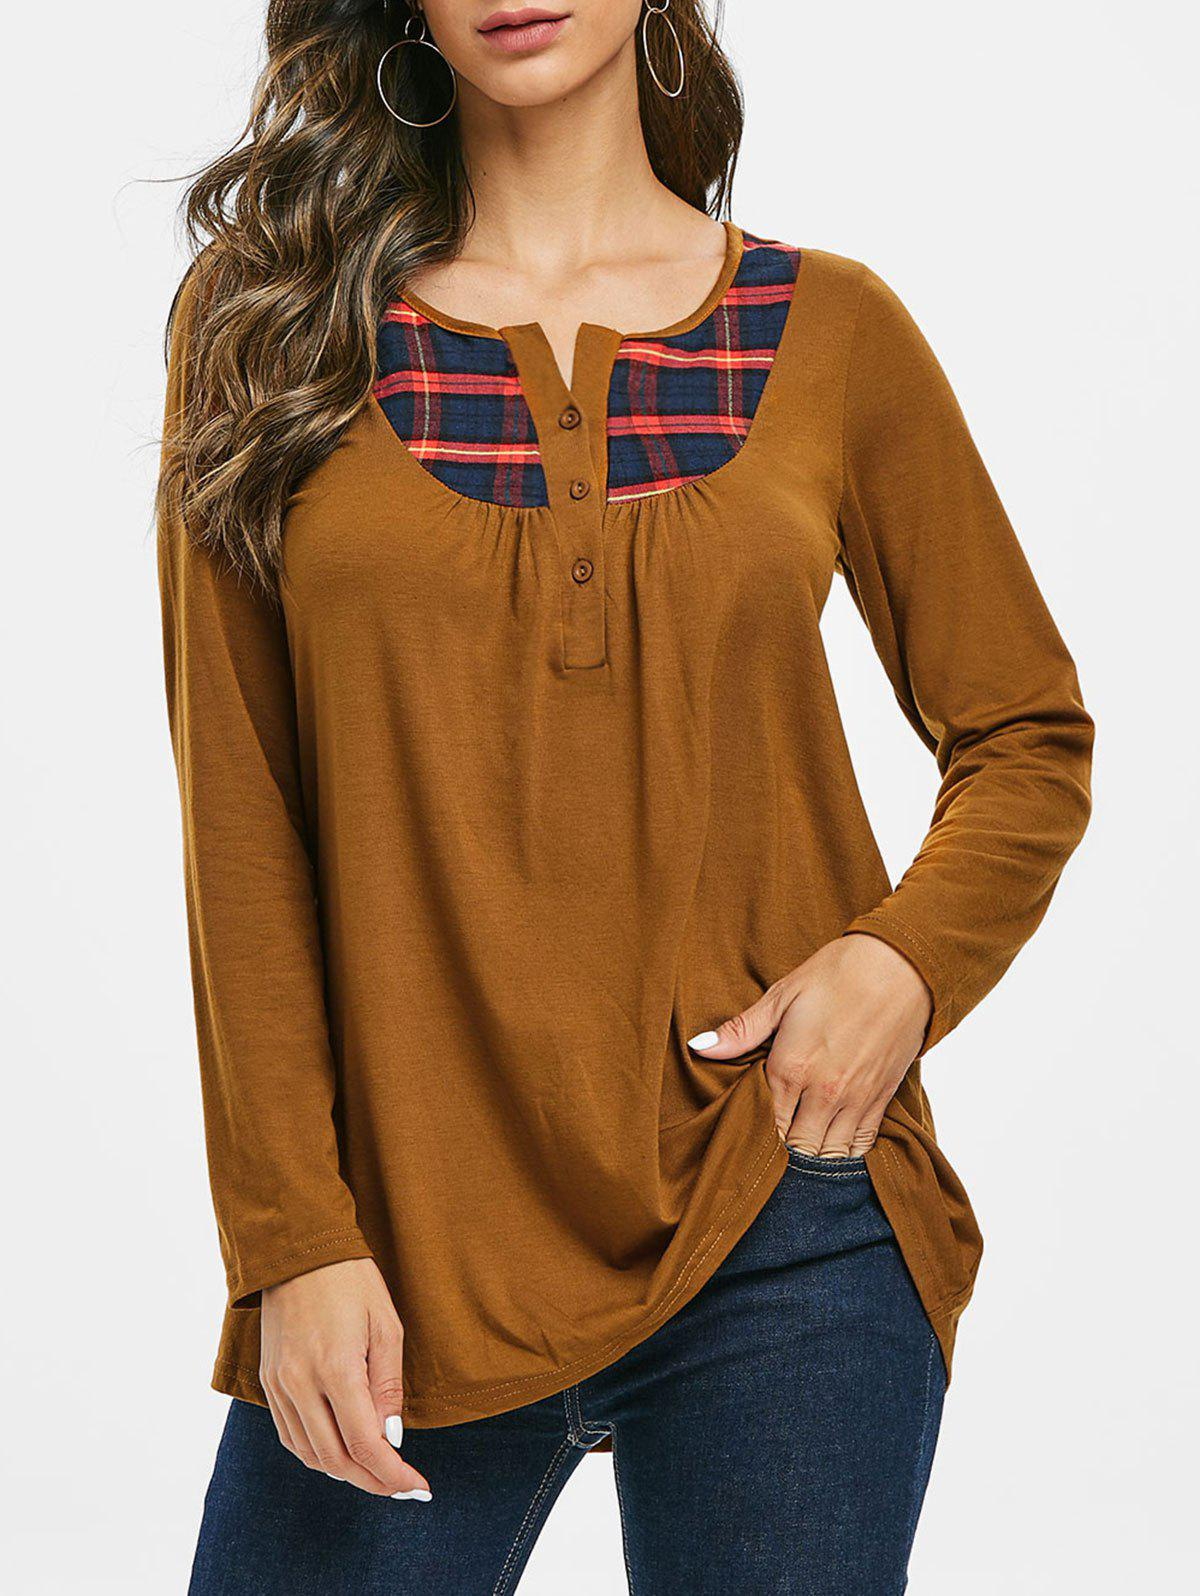 Plaid Half Button Ruched Notched Tee - LIGHT BROWN S